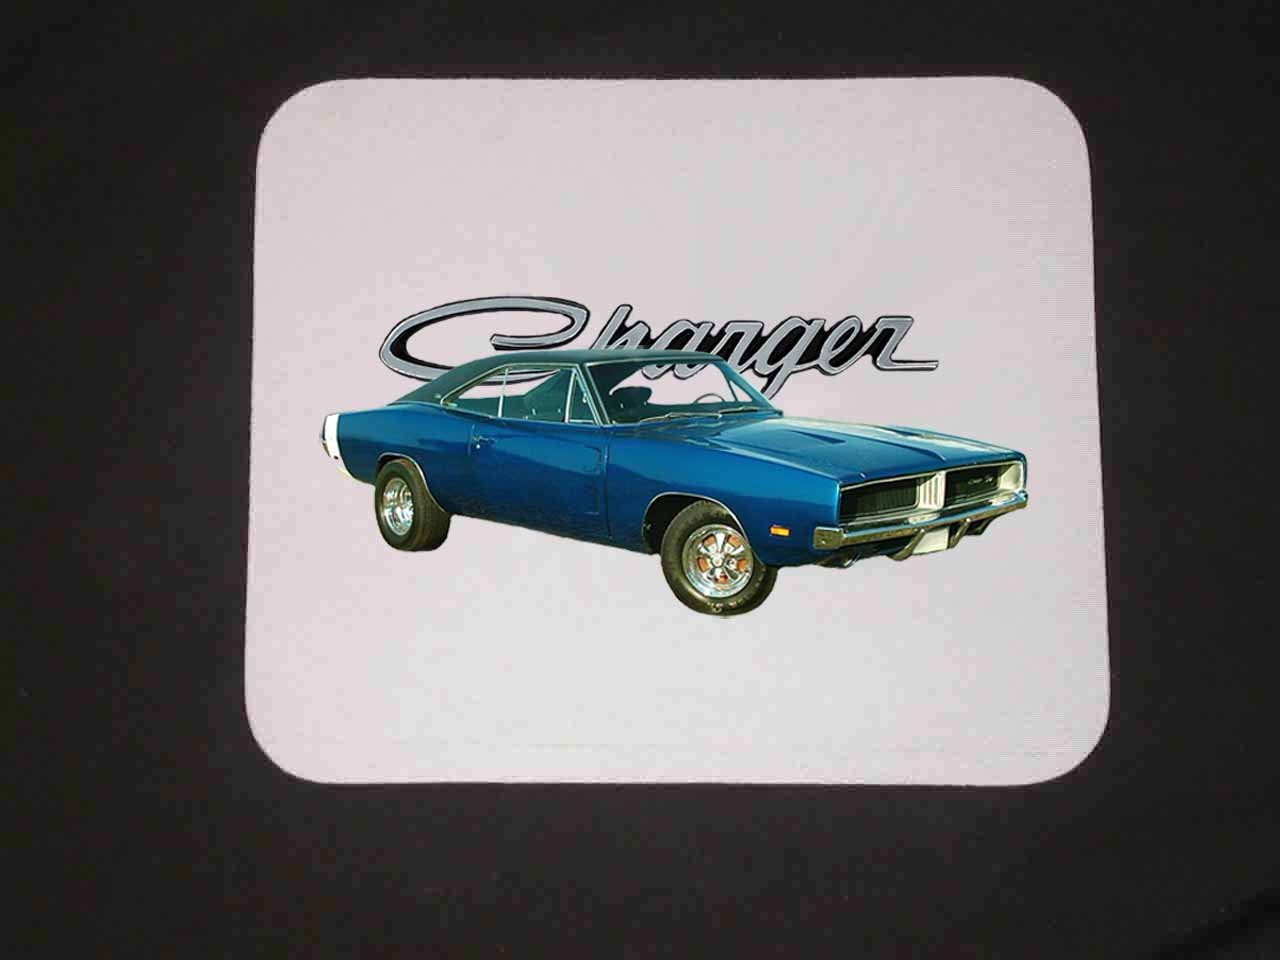 New 1969 Dodge Charger RT Mousepad!!